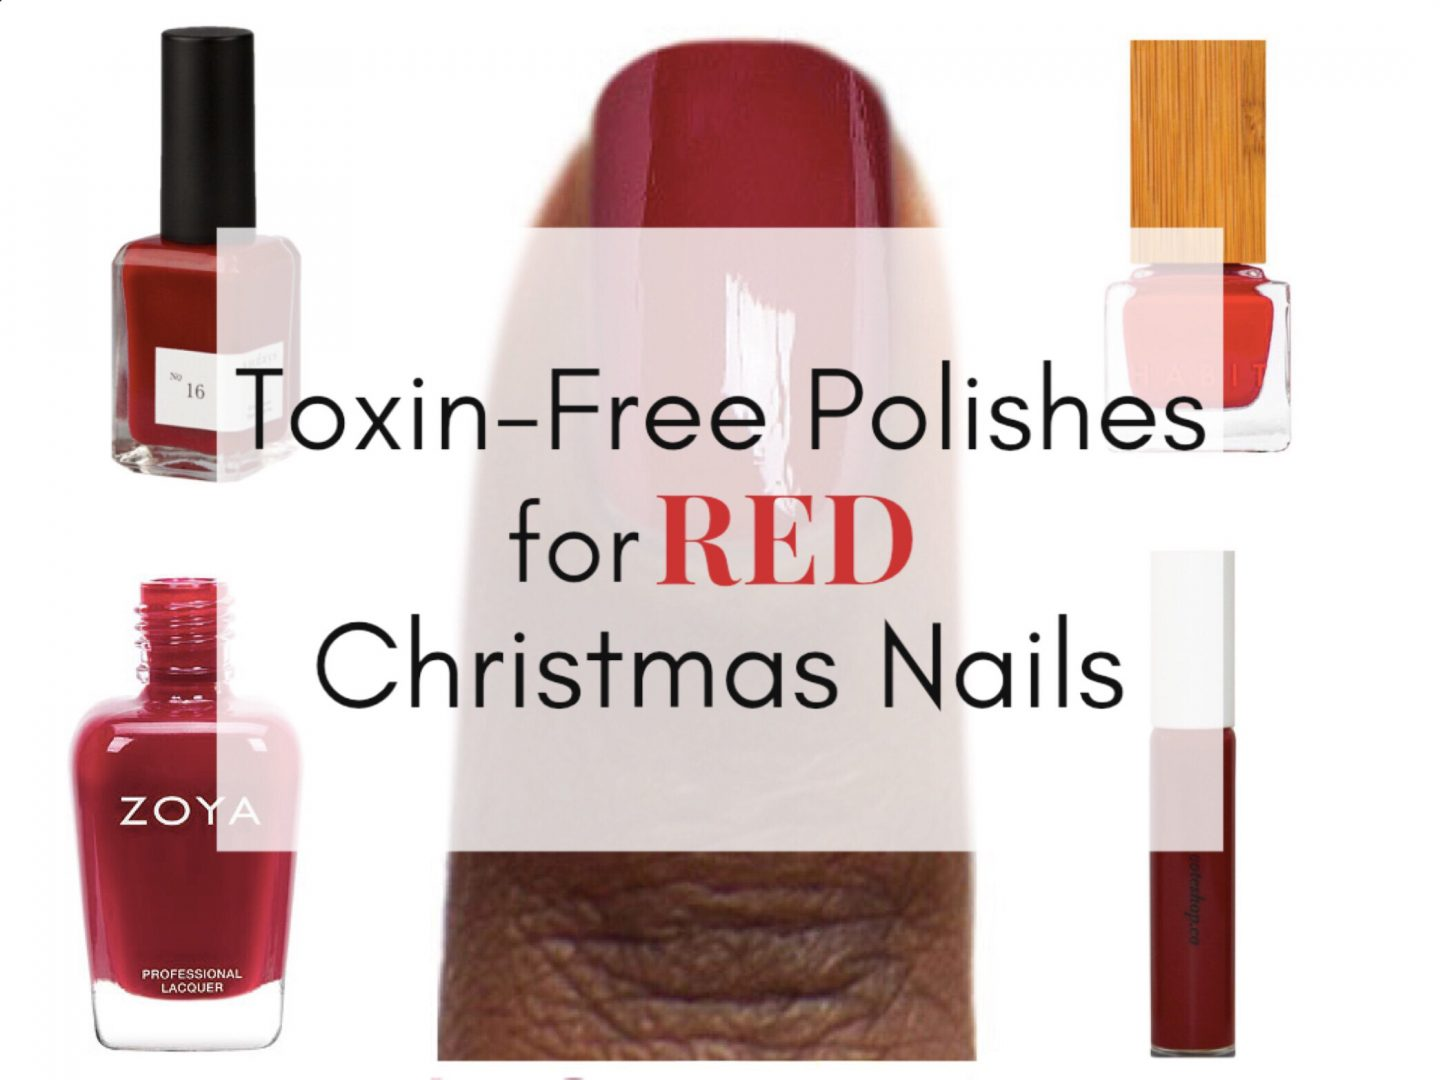 Toxin-Free Polishes for Red Christmas Nails